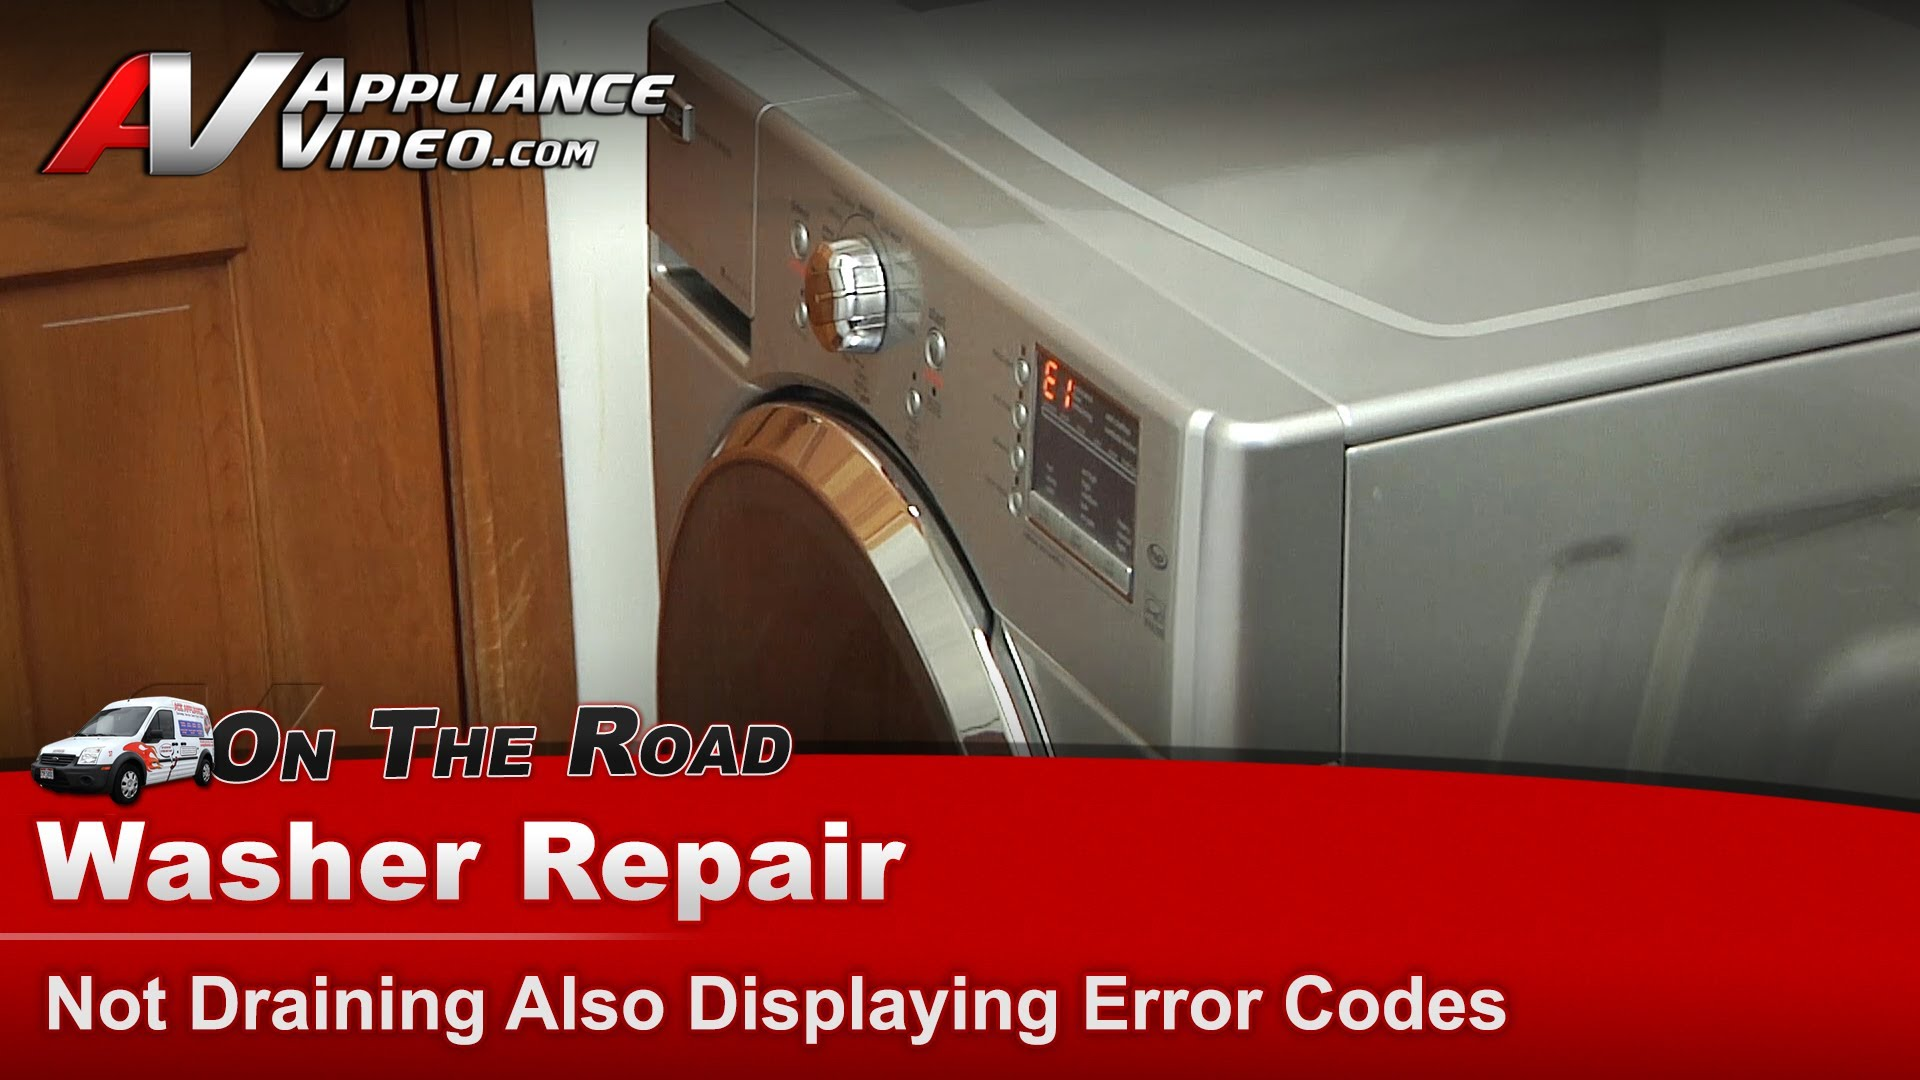 Maytag Mhwe251yl00 Washer Diagnostic And Repair Not